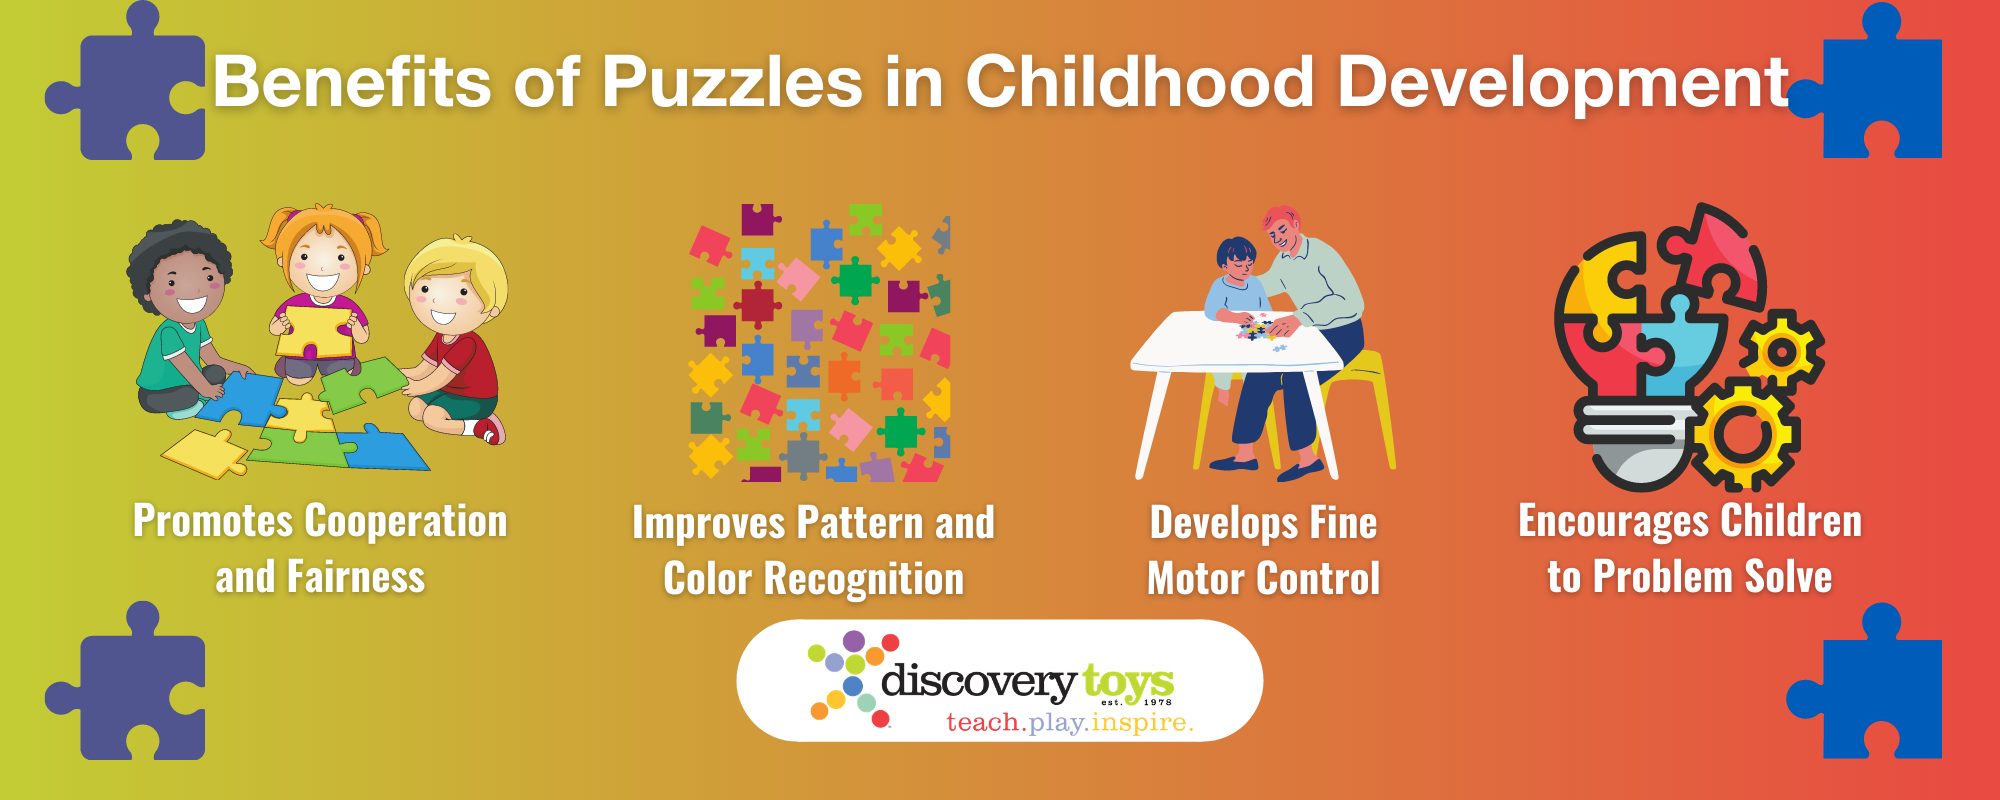 Infographic showing how puzzles contribute to child development